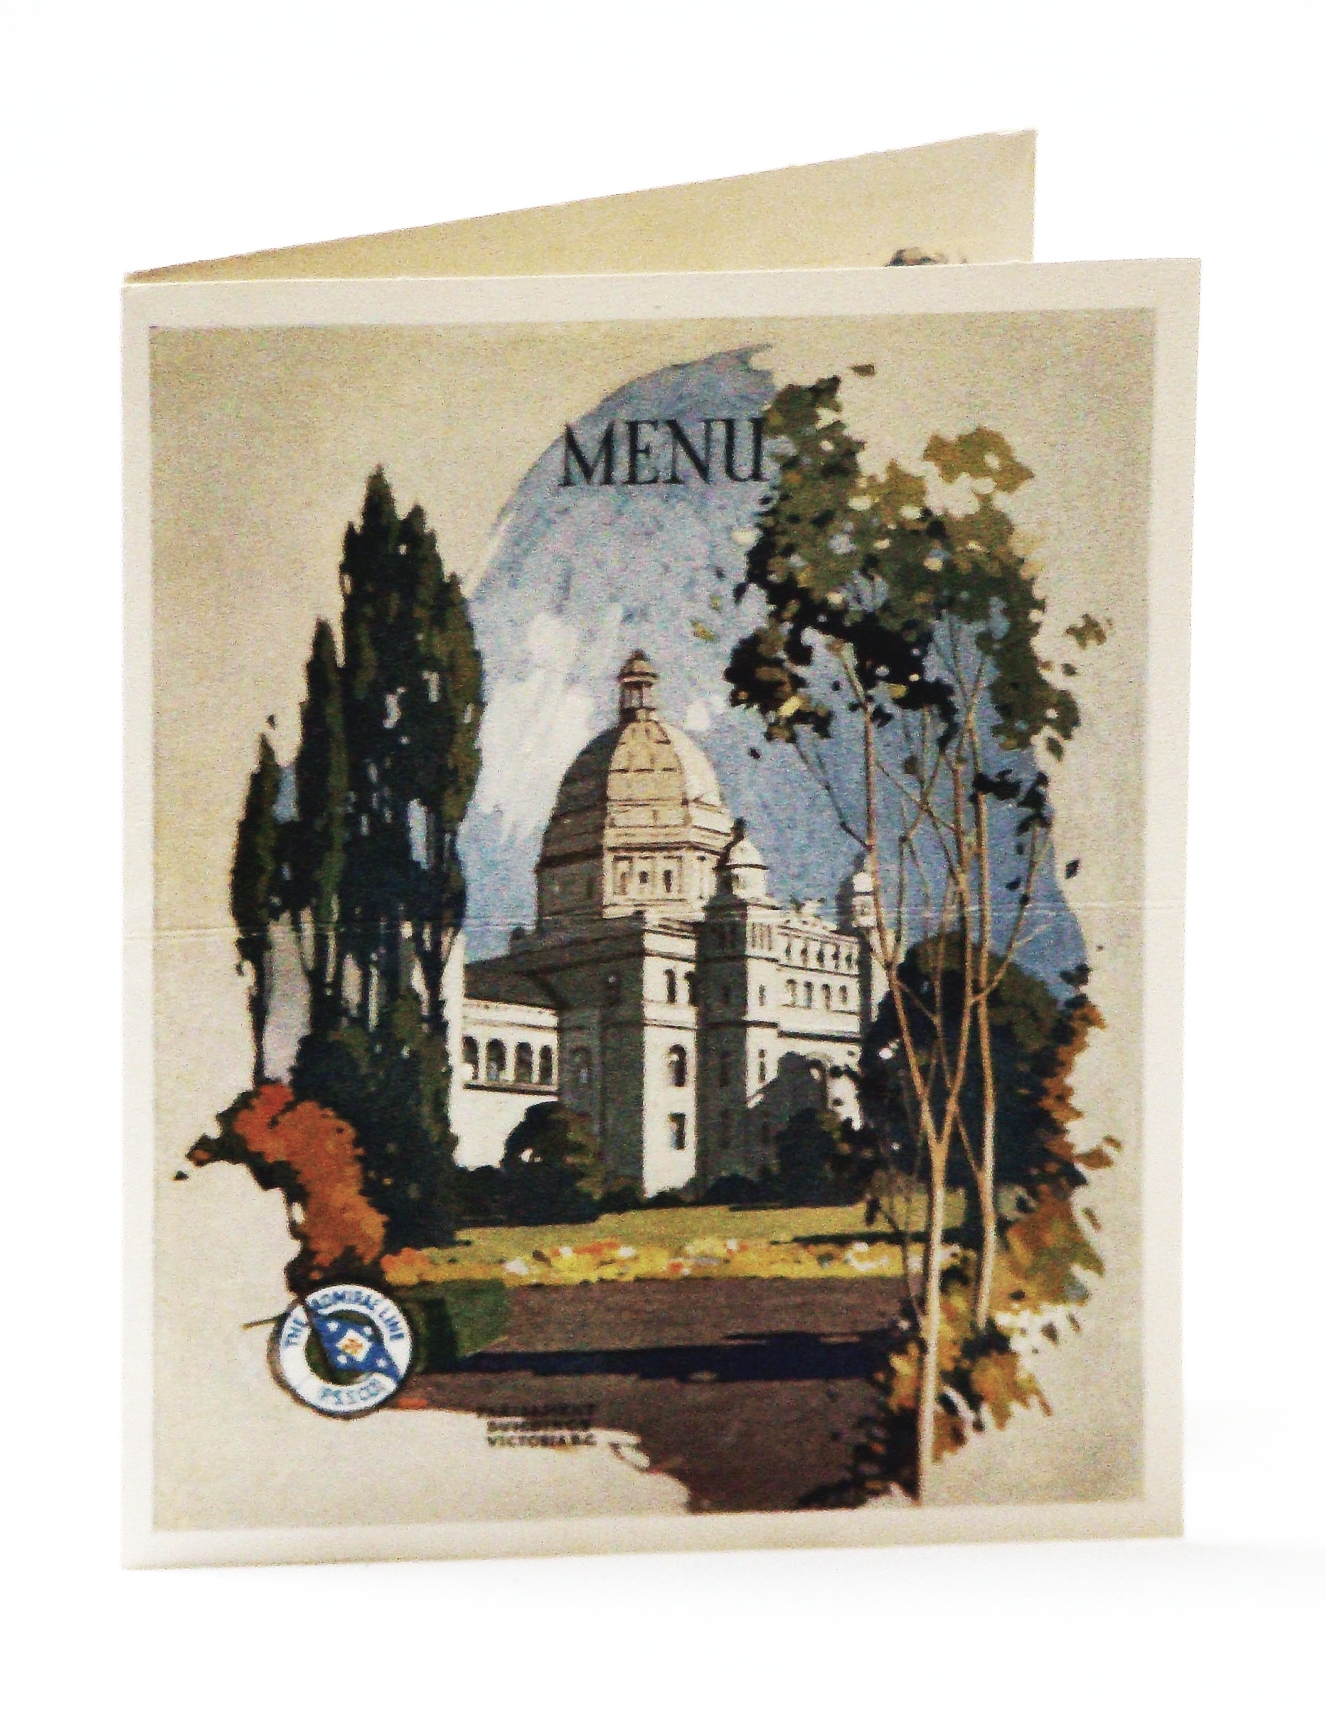 Image for Color Dinner Menu/Postcard From the S.S. Admiral Dewey, Operated by the Pacific Steamship Company / The Admiral Line